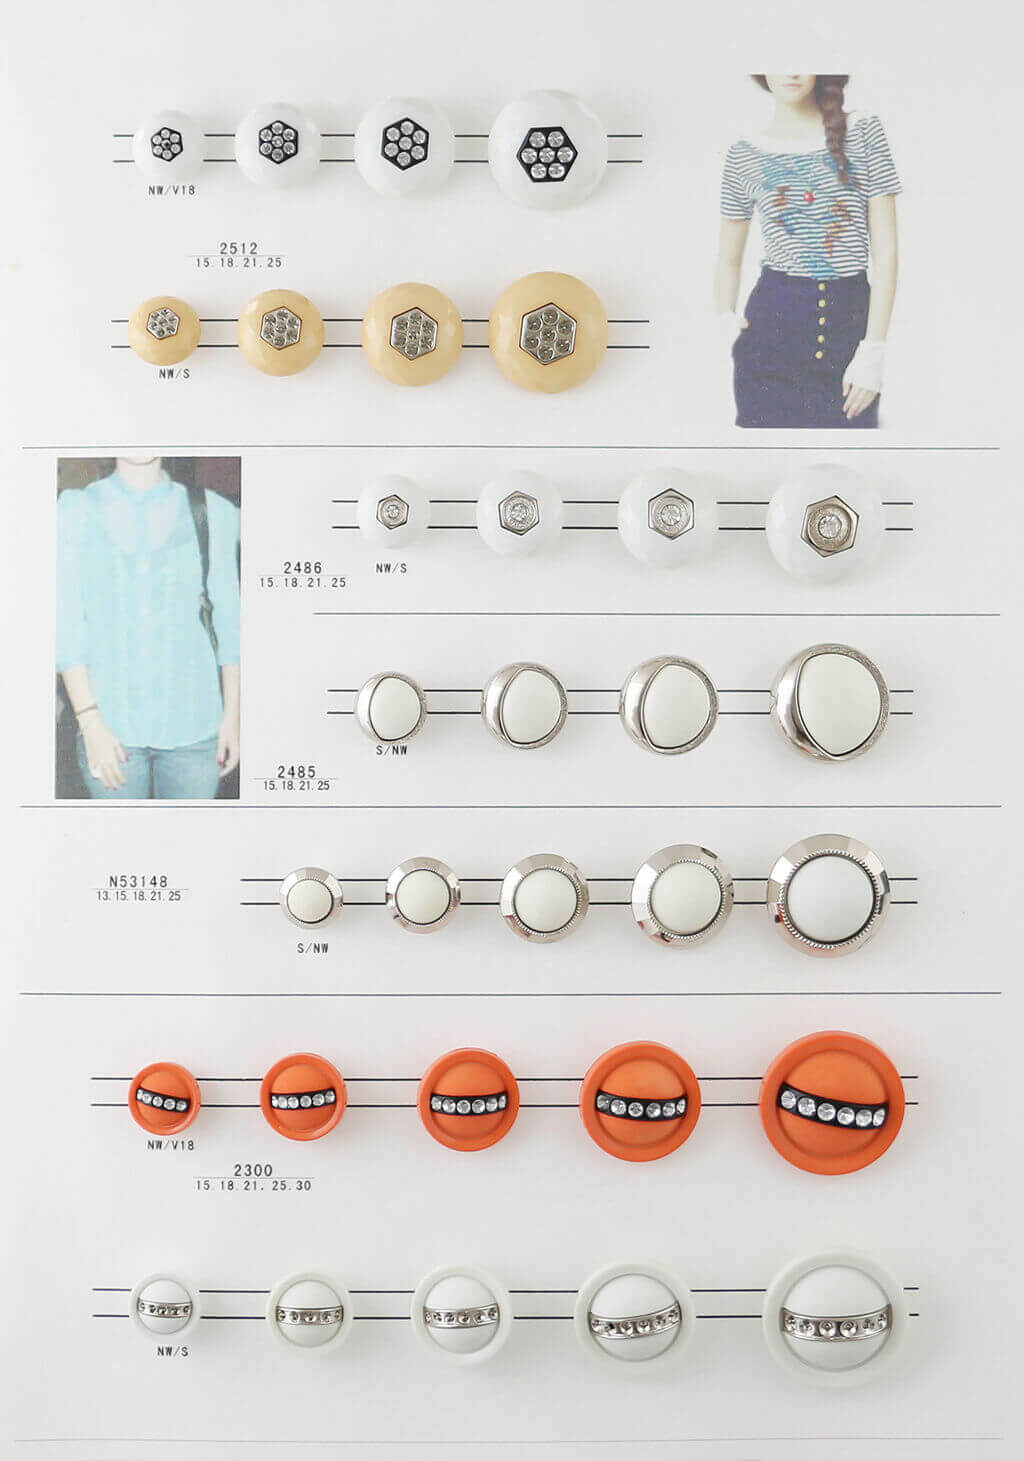 fashion buttons catalogue, combined buttons catalogue